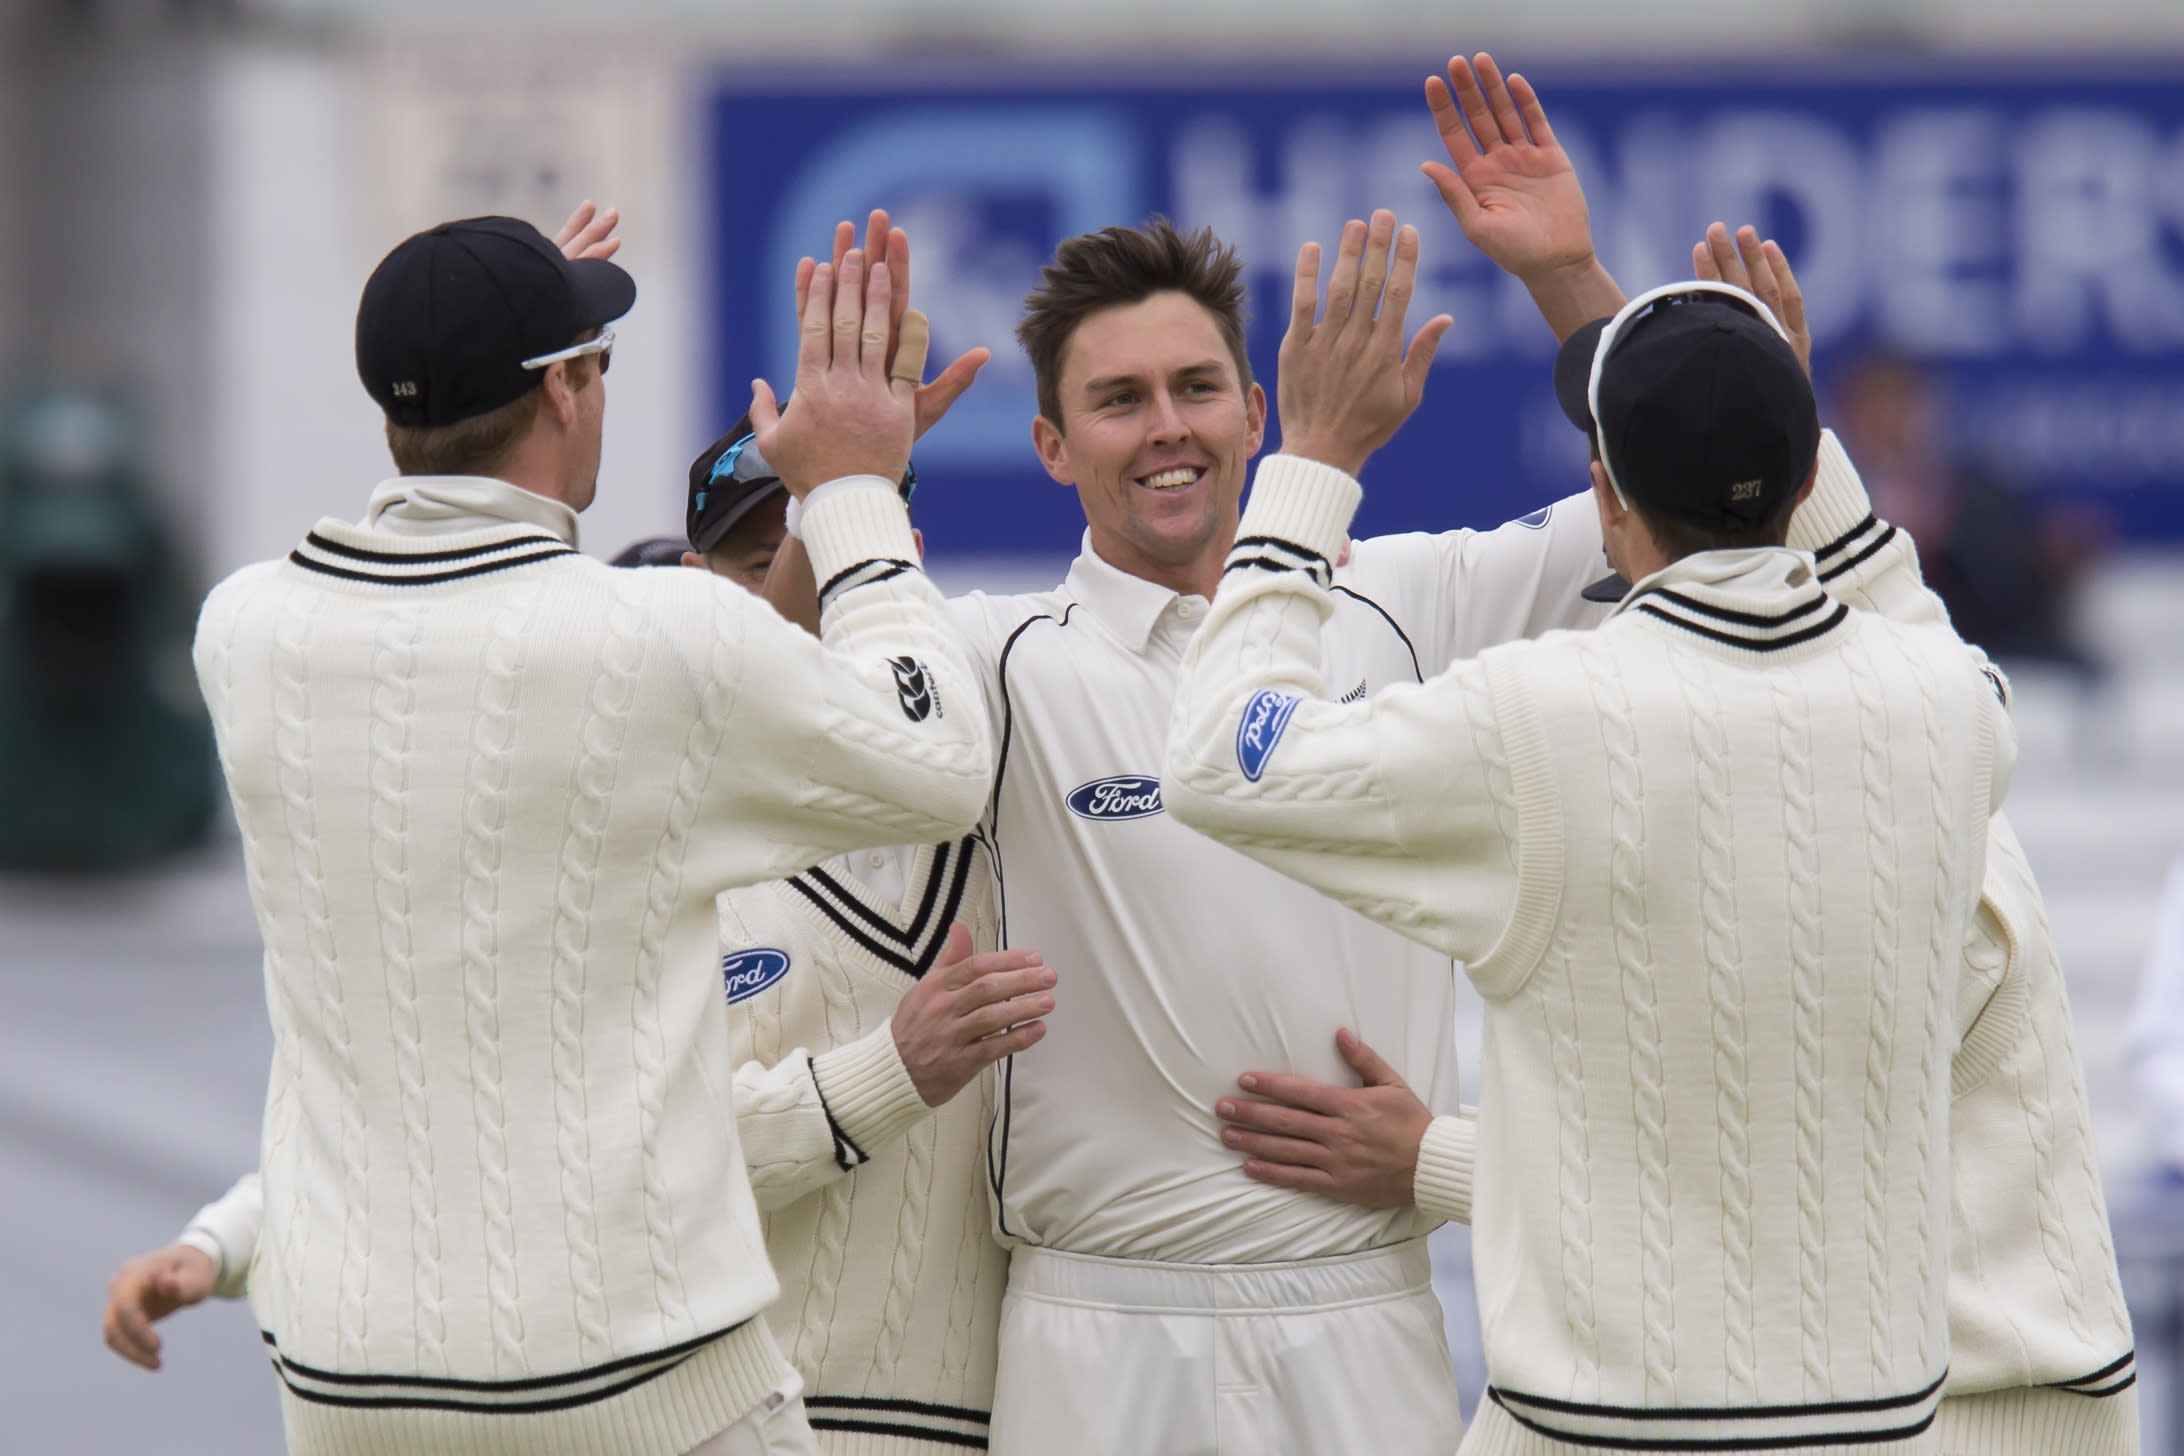 New Zealand 2 wickets away from beating England in 2nd test